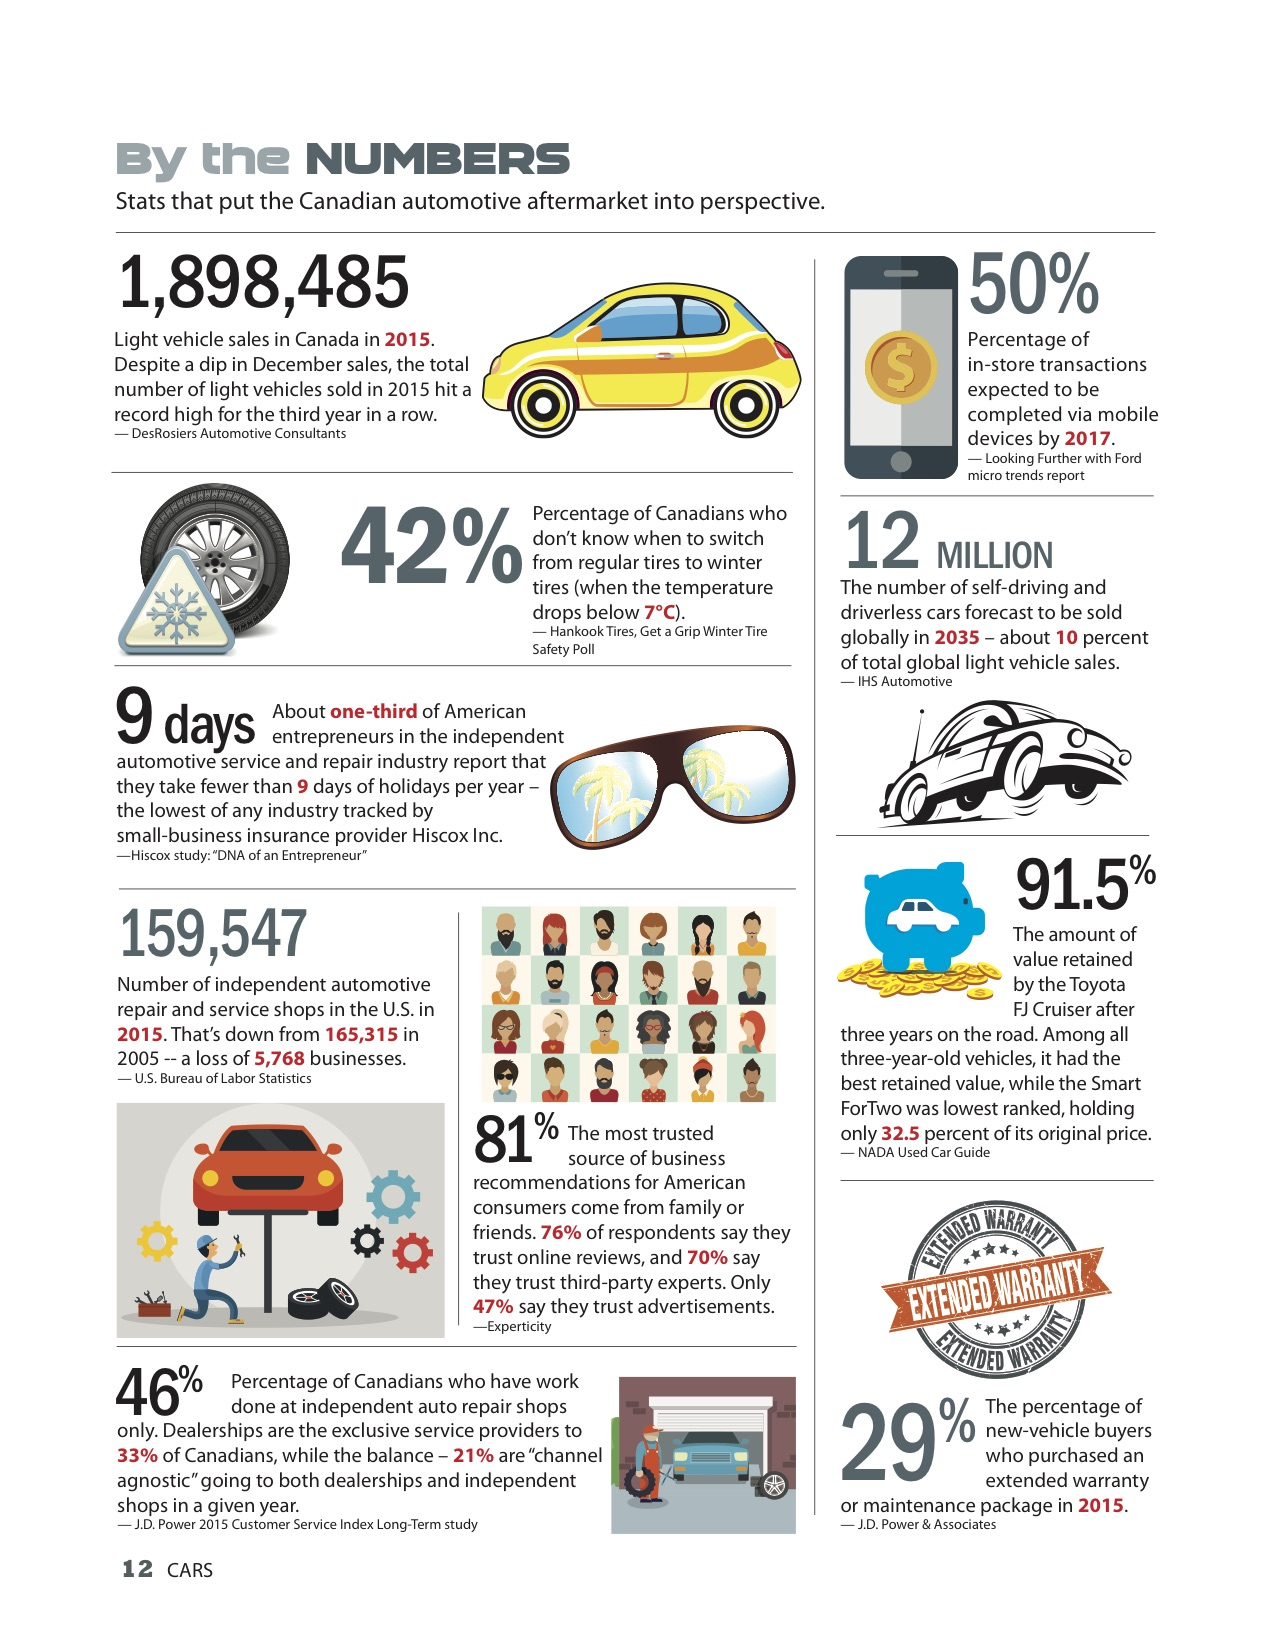 By the numbers: Light vehicle sales and more... - Auto Service World